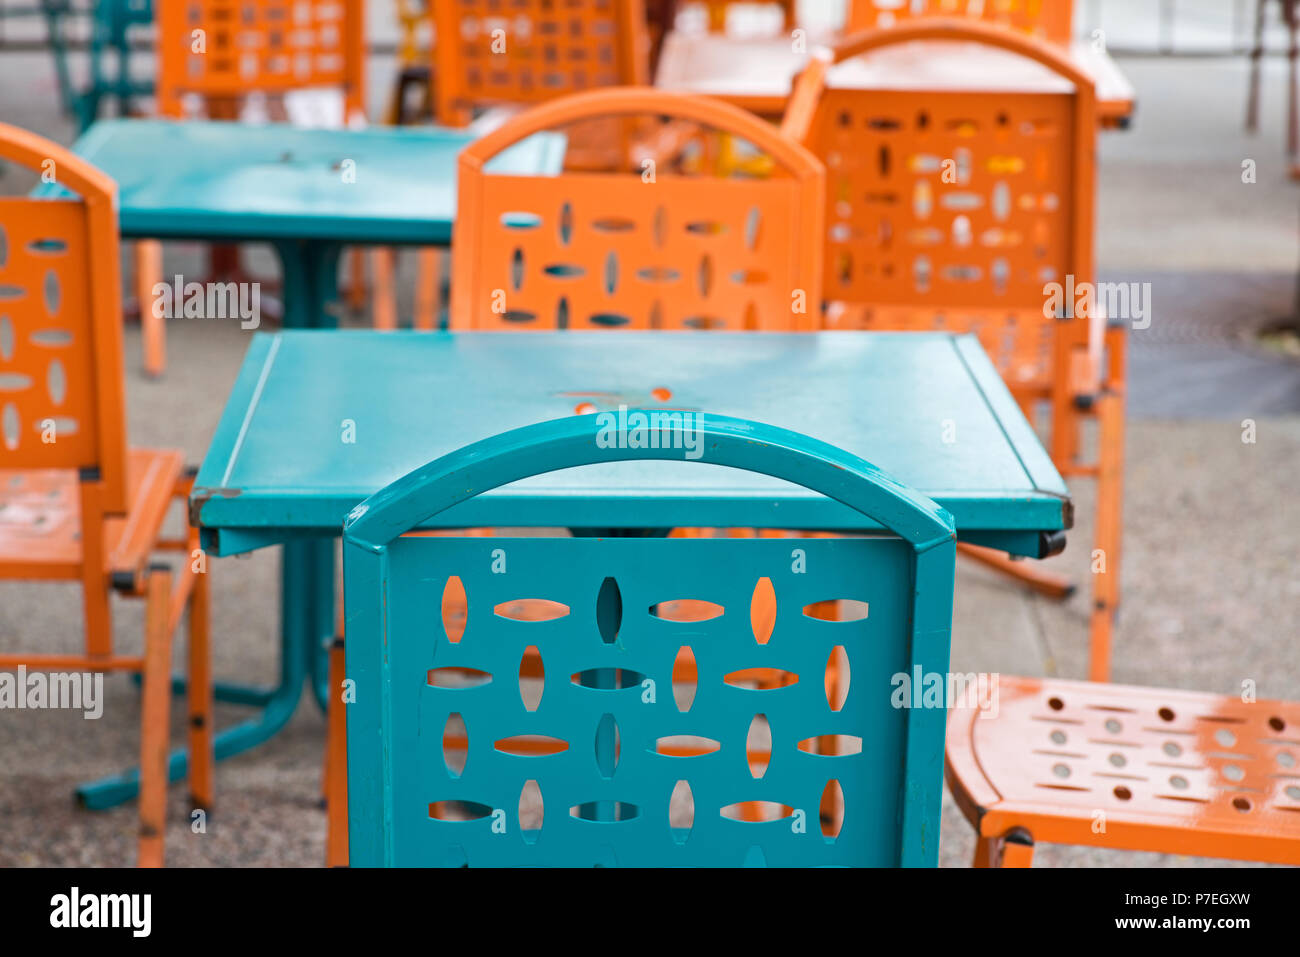 https www alamy com commercial outdoor colorful dining furniture restaurant metal patio side tables and chairs image211147633 html